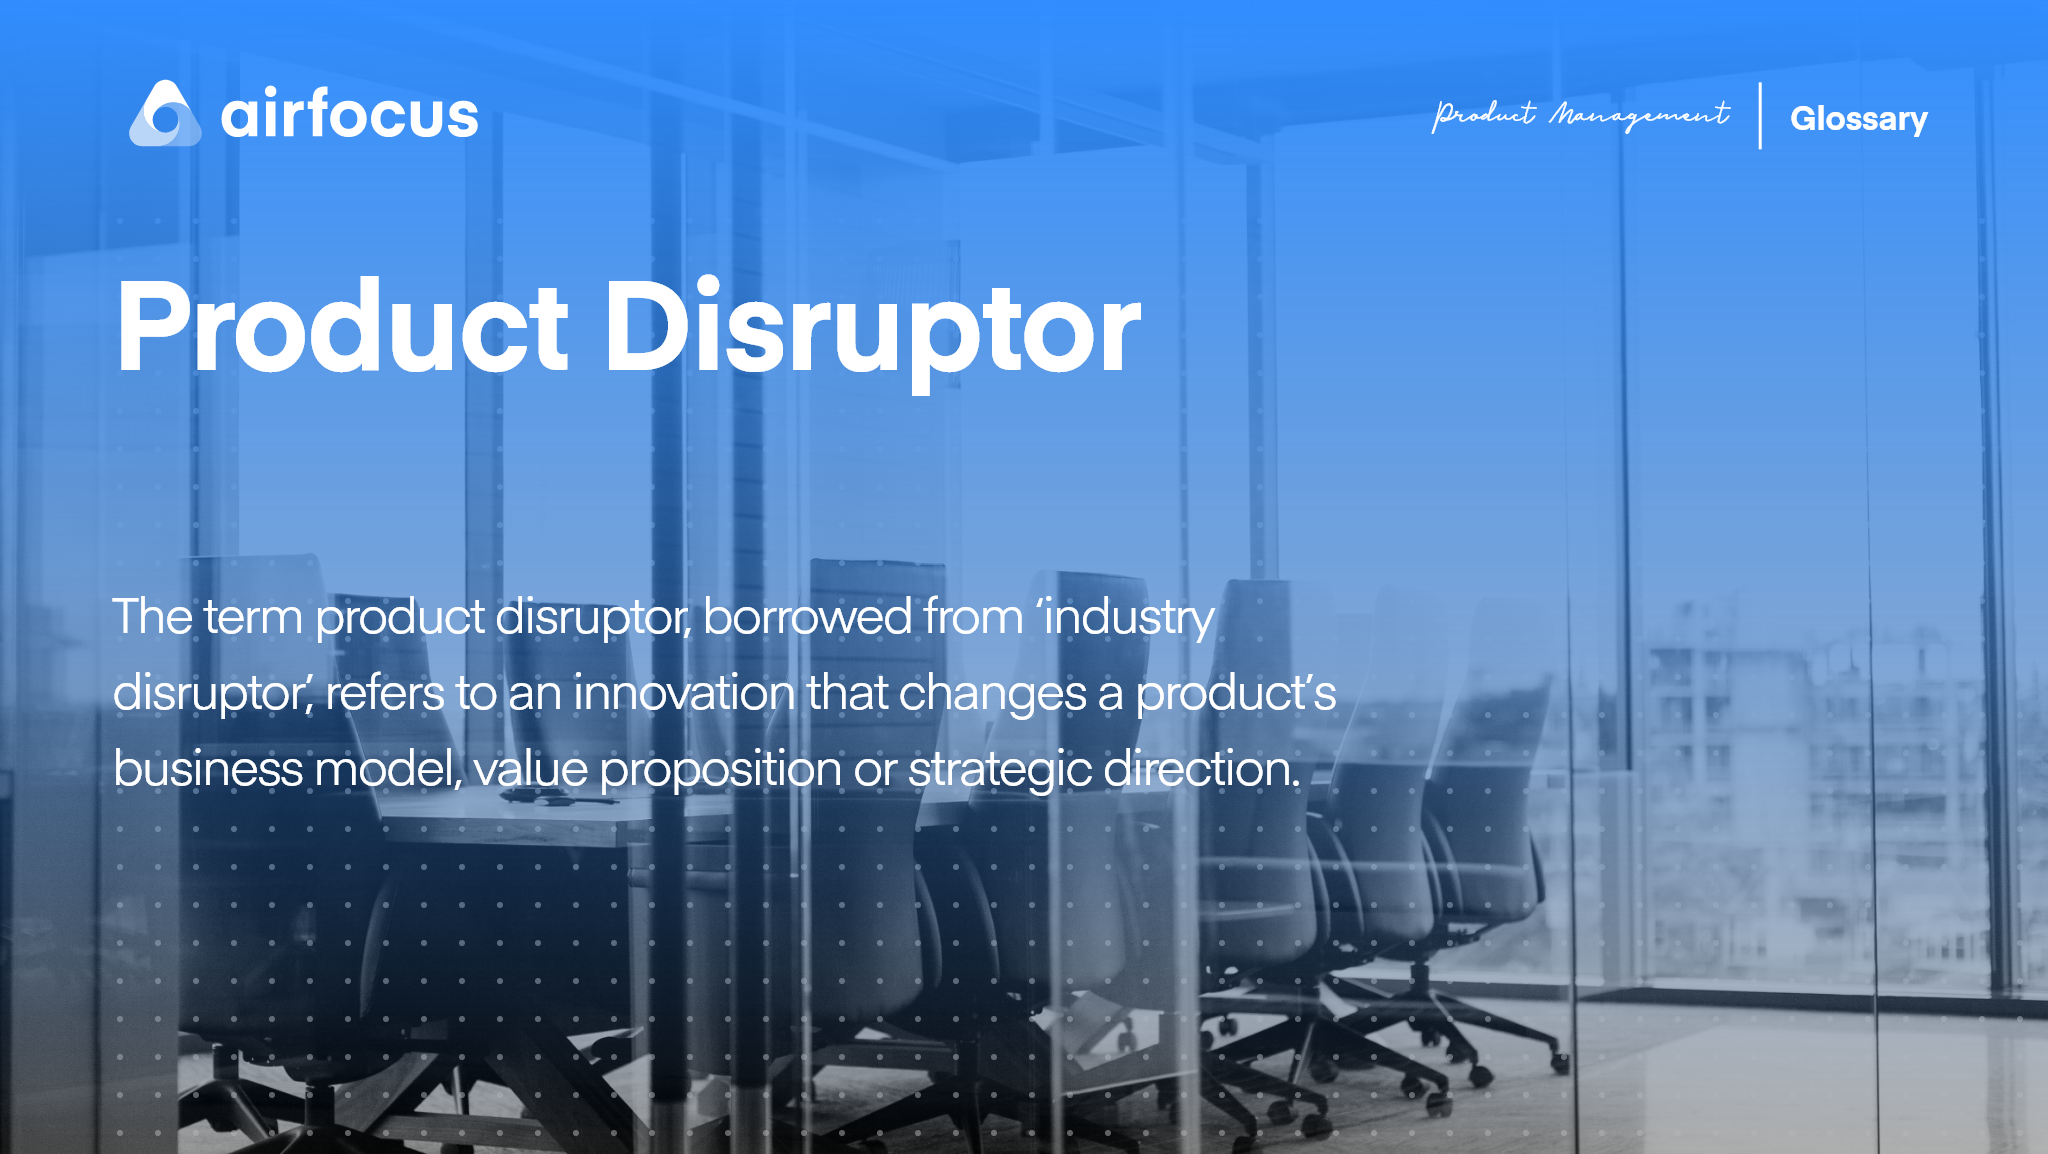 What Is A Product Disruptor